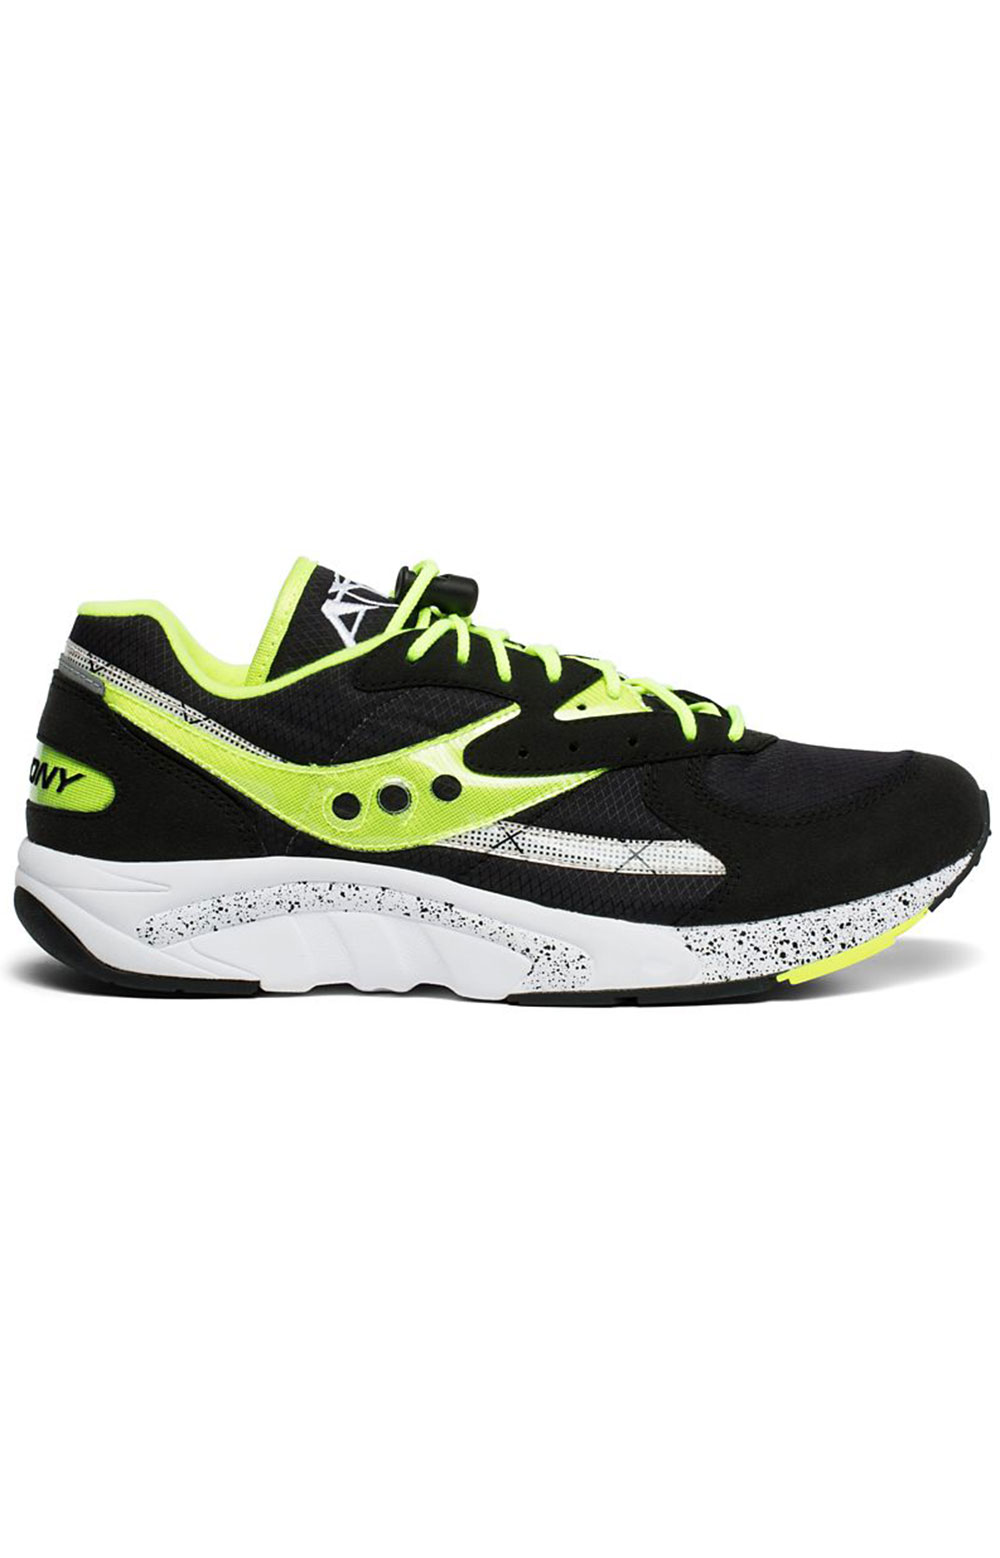 (S70460-3) Aya Shoe - Black/Neon